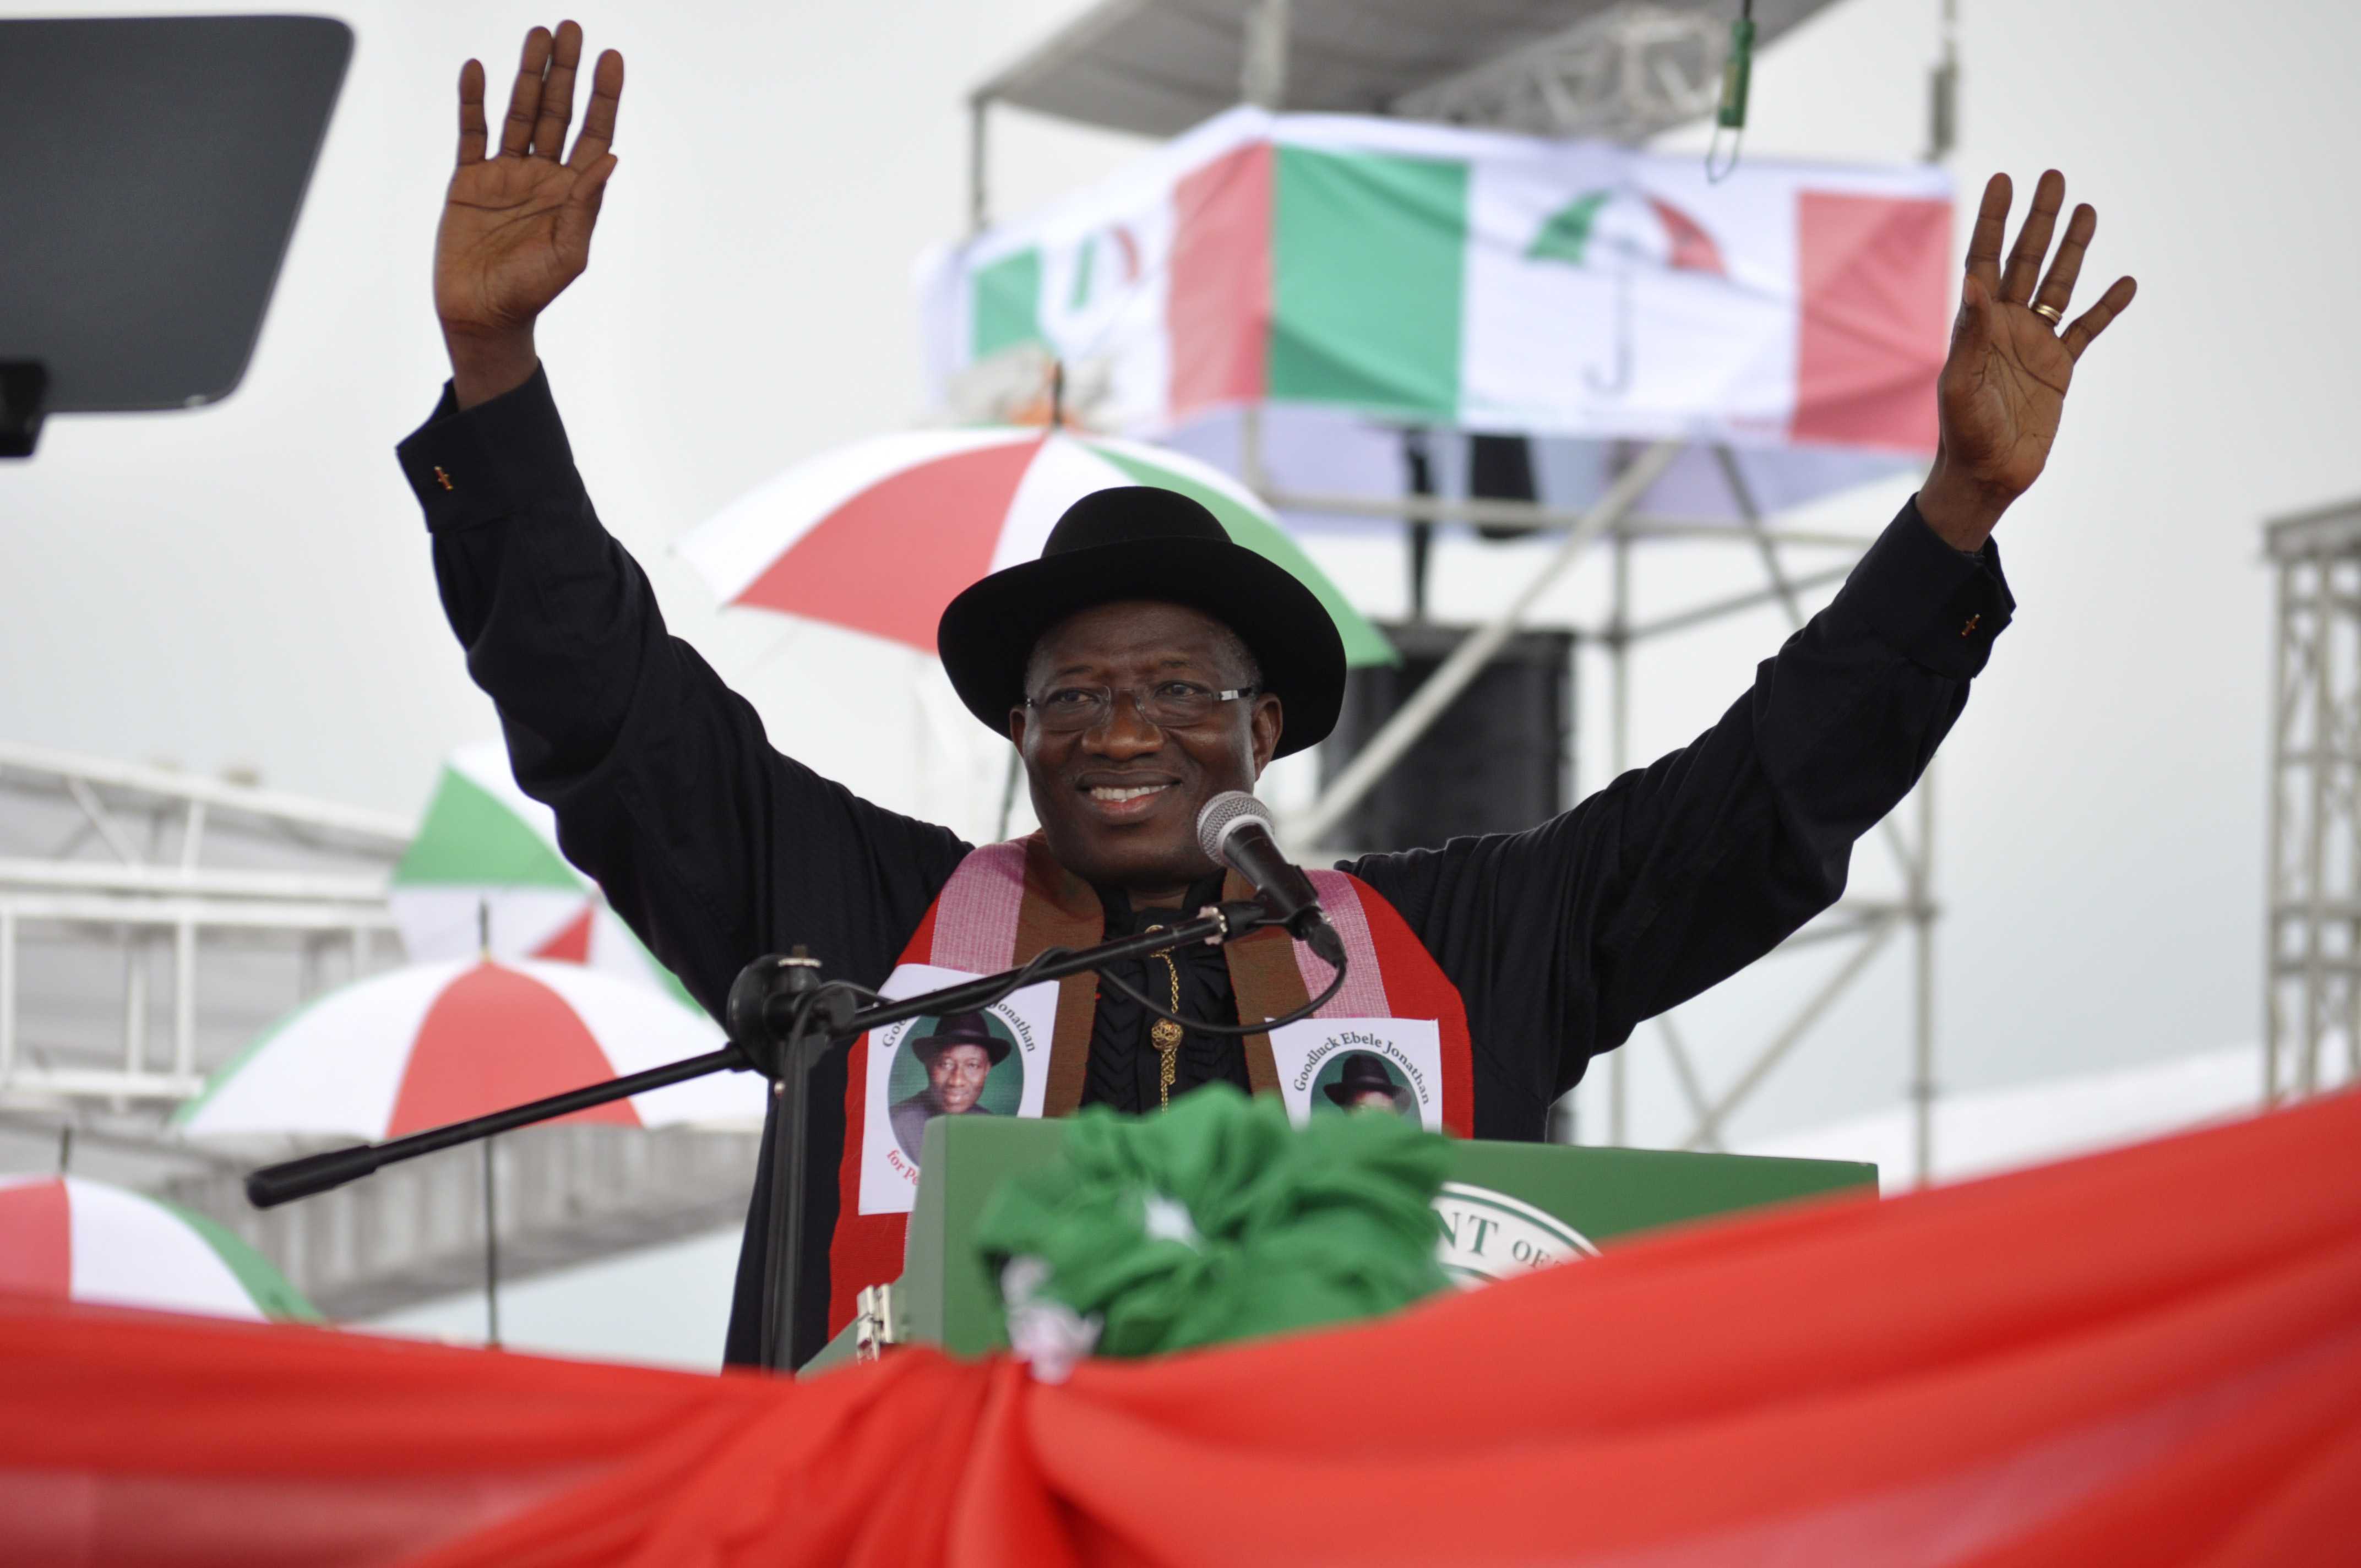 Nigeria President, Goodluck Jonathan, waves to his supporters during a political rally declaring his intention to run in next year's election in Abuja, Nigeria, Tuesday, Nov. 11, 2014, (AP Photo)